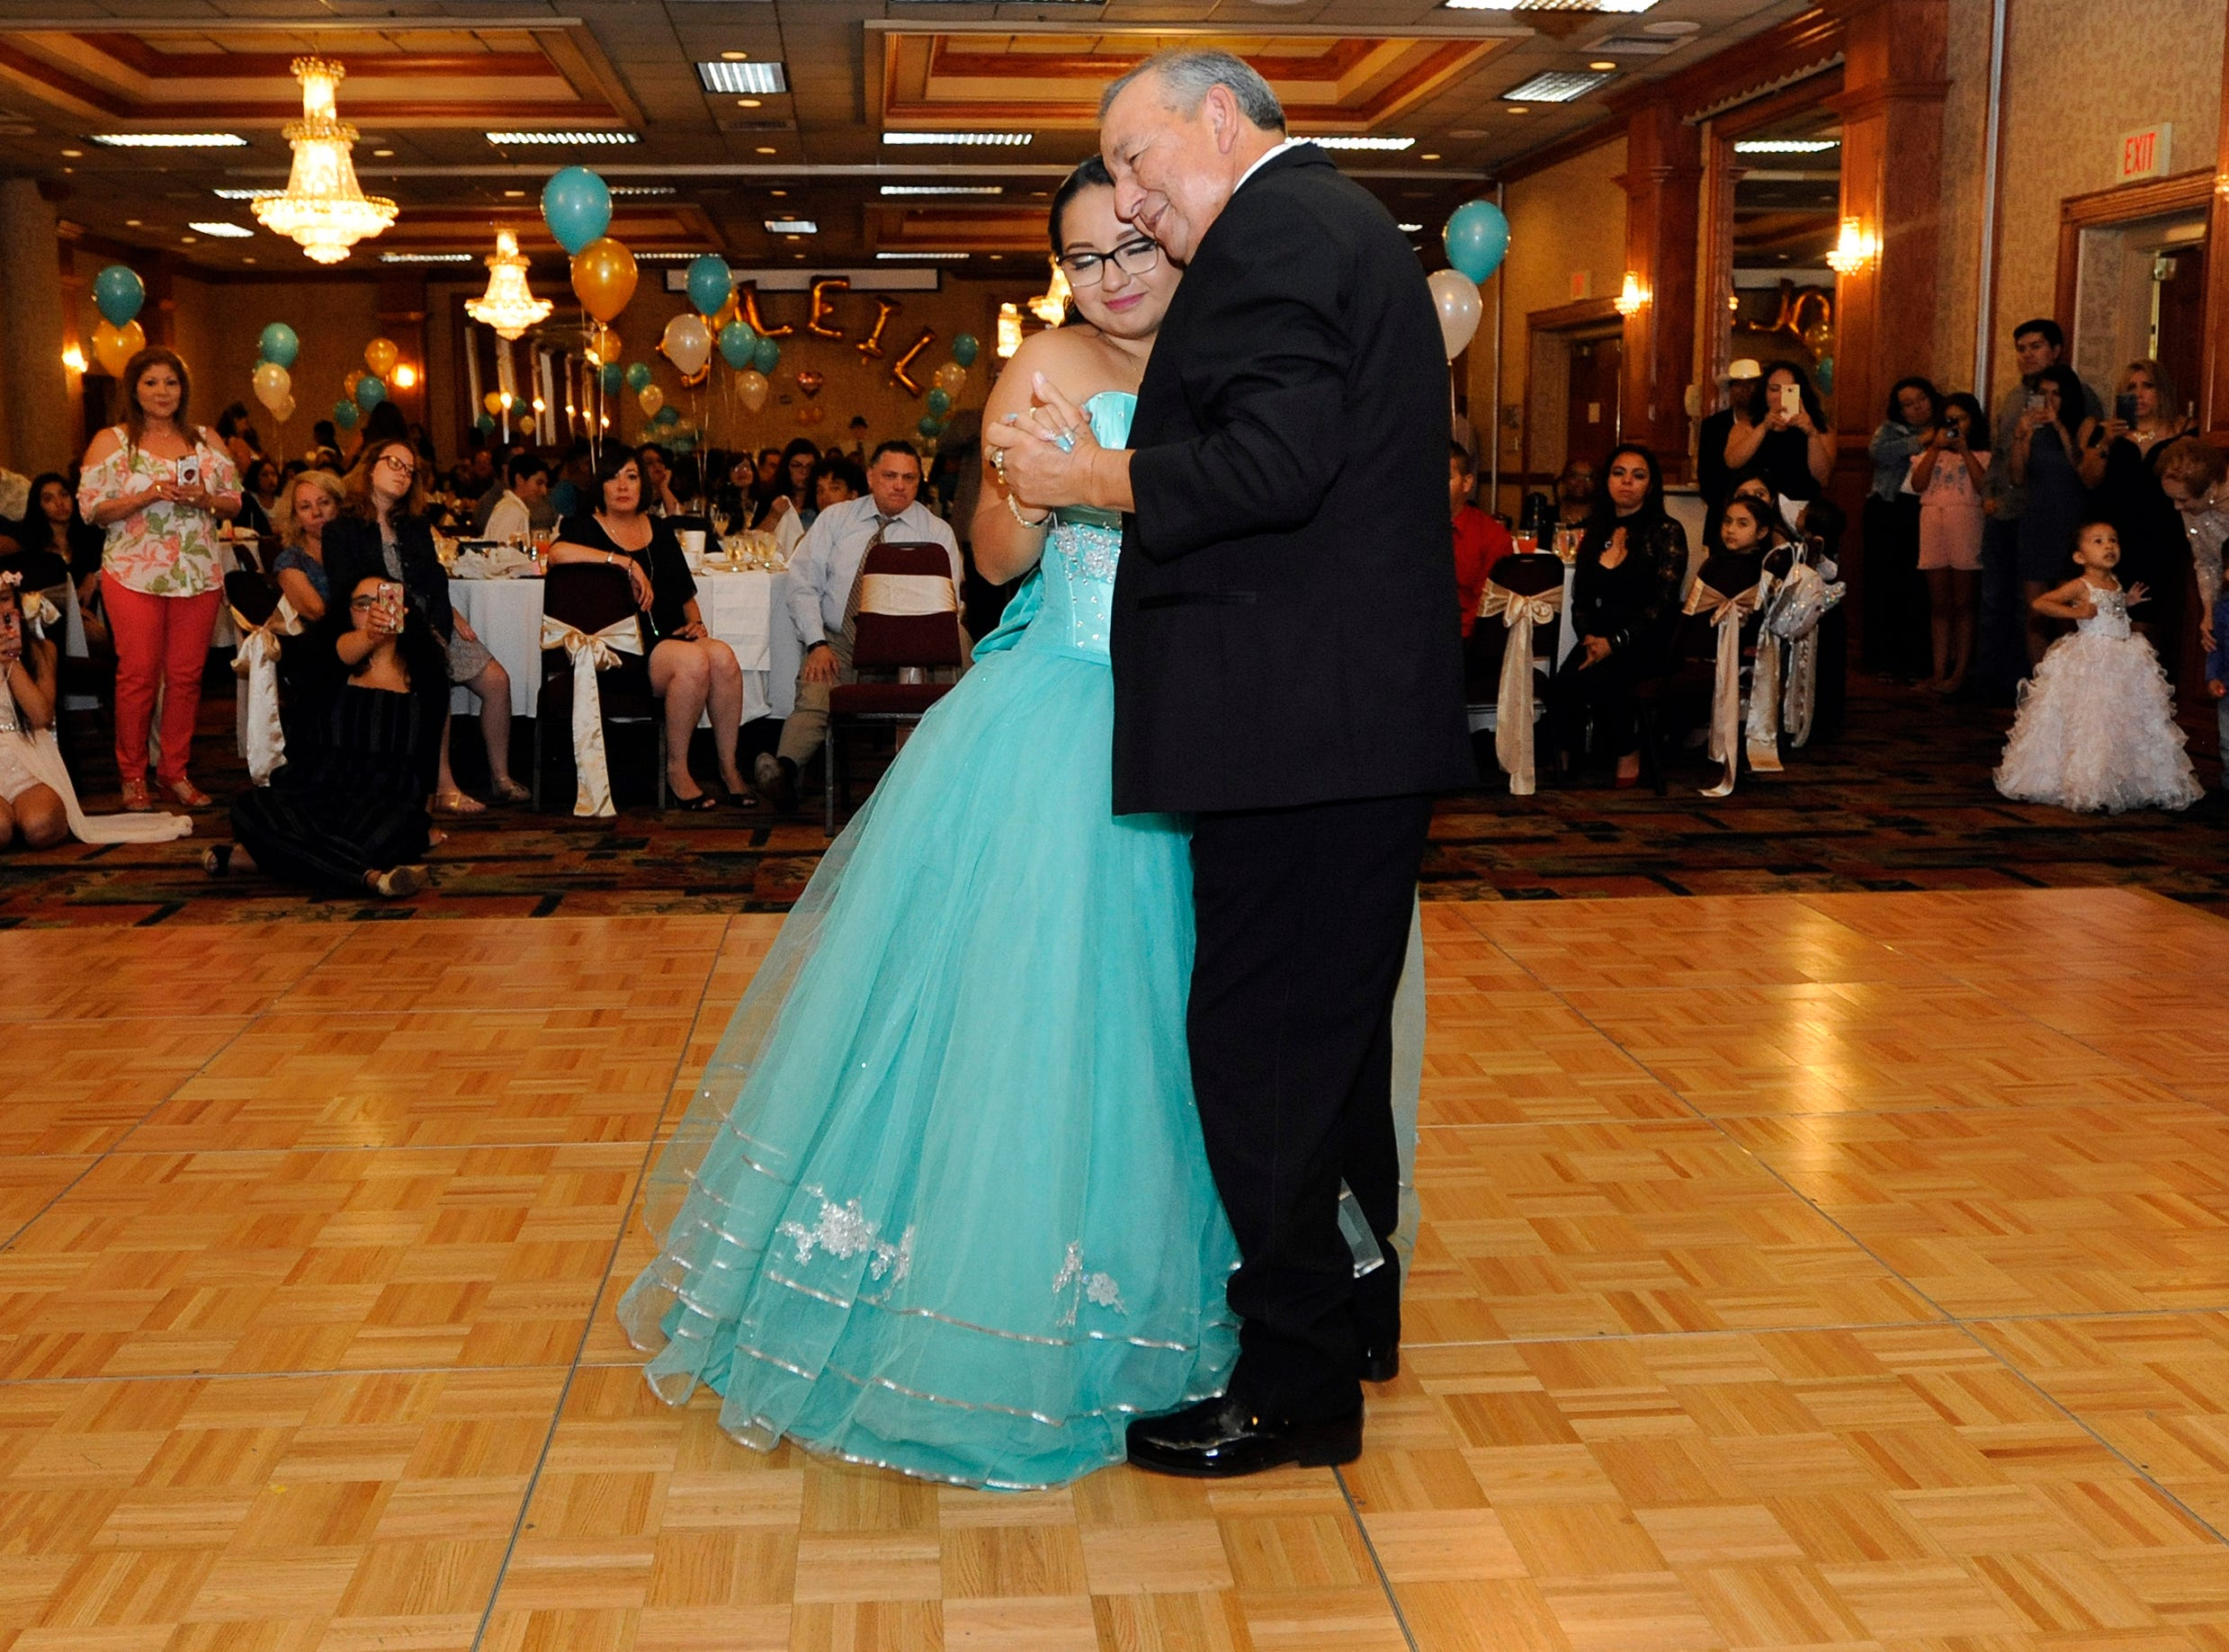 Soleil Garcia, left, dances with her grandfather, Jose, during her quinceañera reception, July 28, 2018 at the Holiday Inn in Southgate.  Jose was substituting for his son, Jorge Garcia, who was deported to Mexico in January.